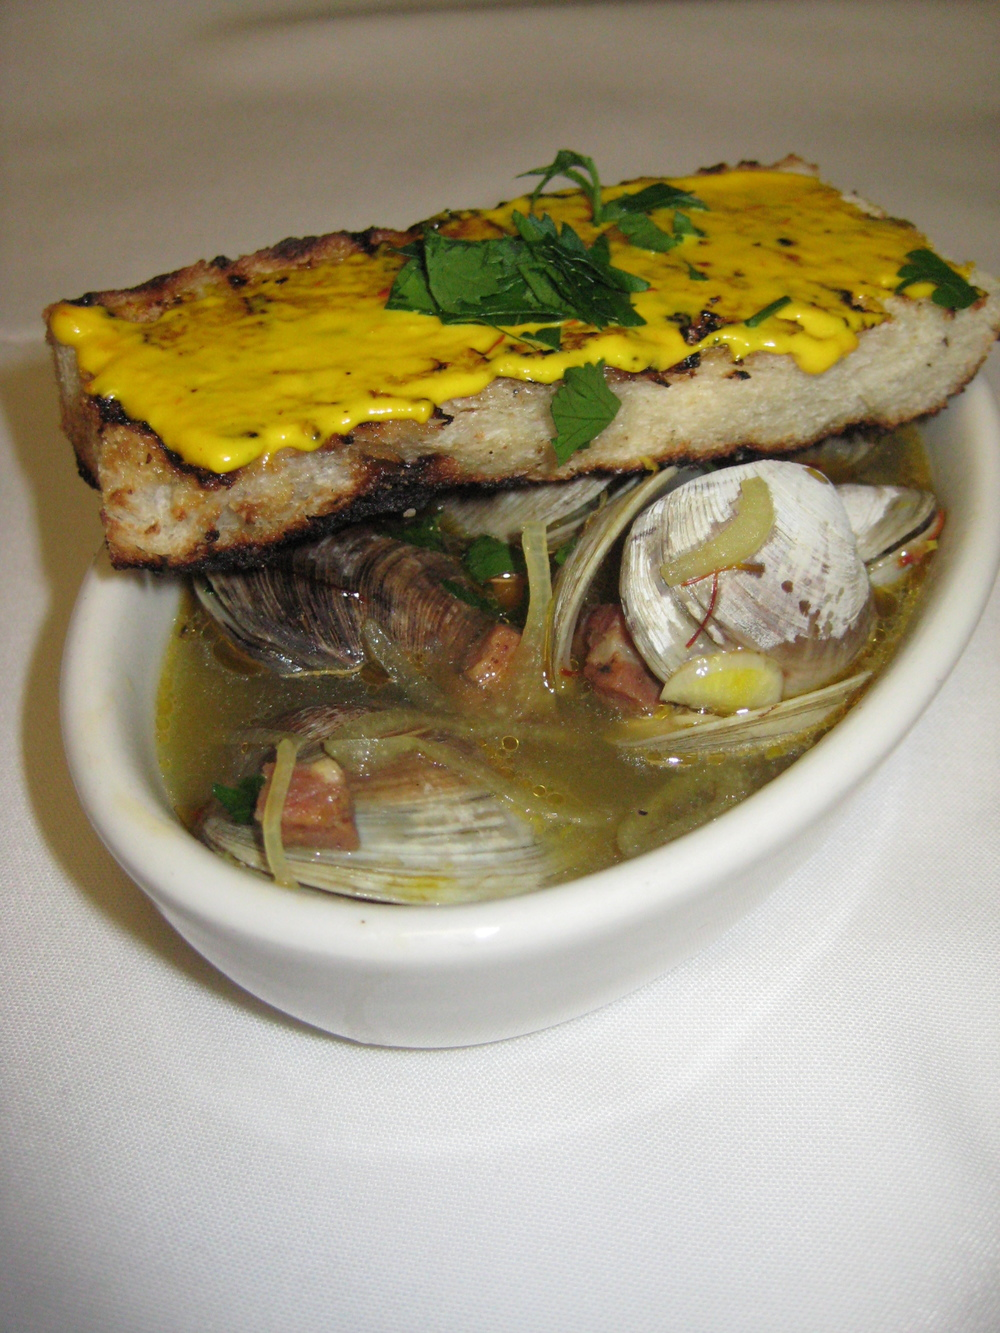 First Course: Littleneck Clams with Beer and Saffron Broth, Crusty Bread, and Garlic Saffron Aioli